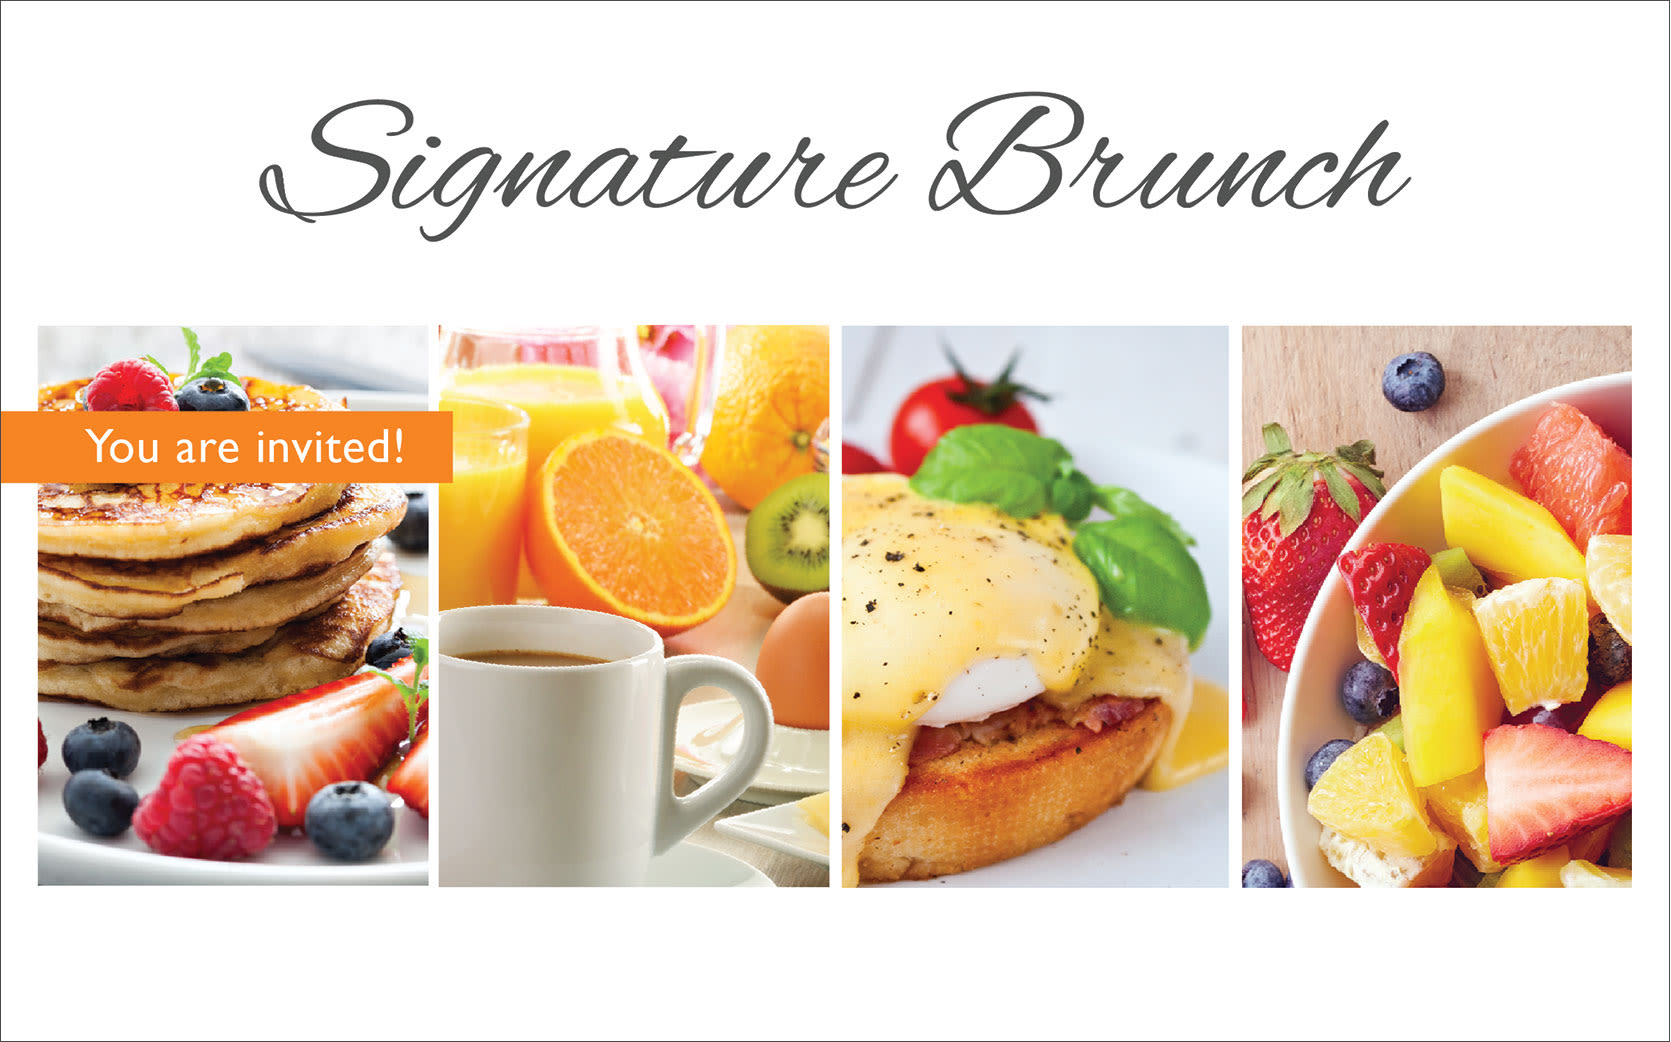 Signature brunch at the senior living community in Highland